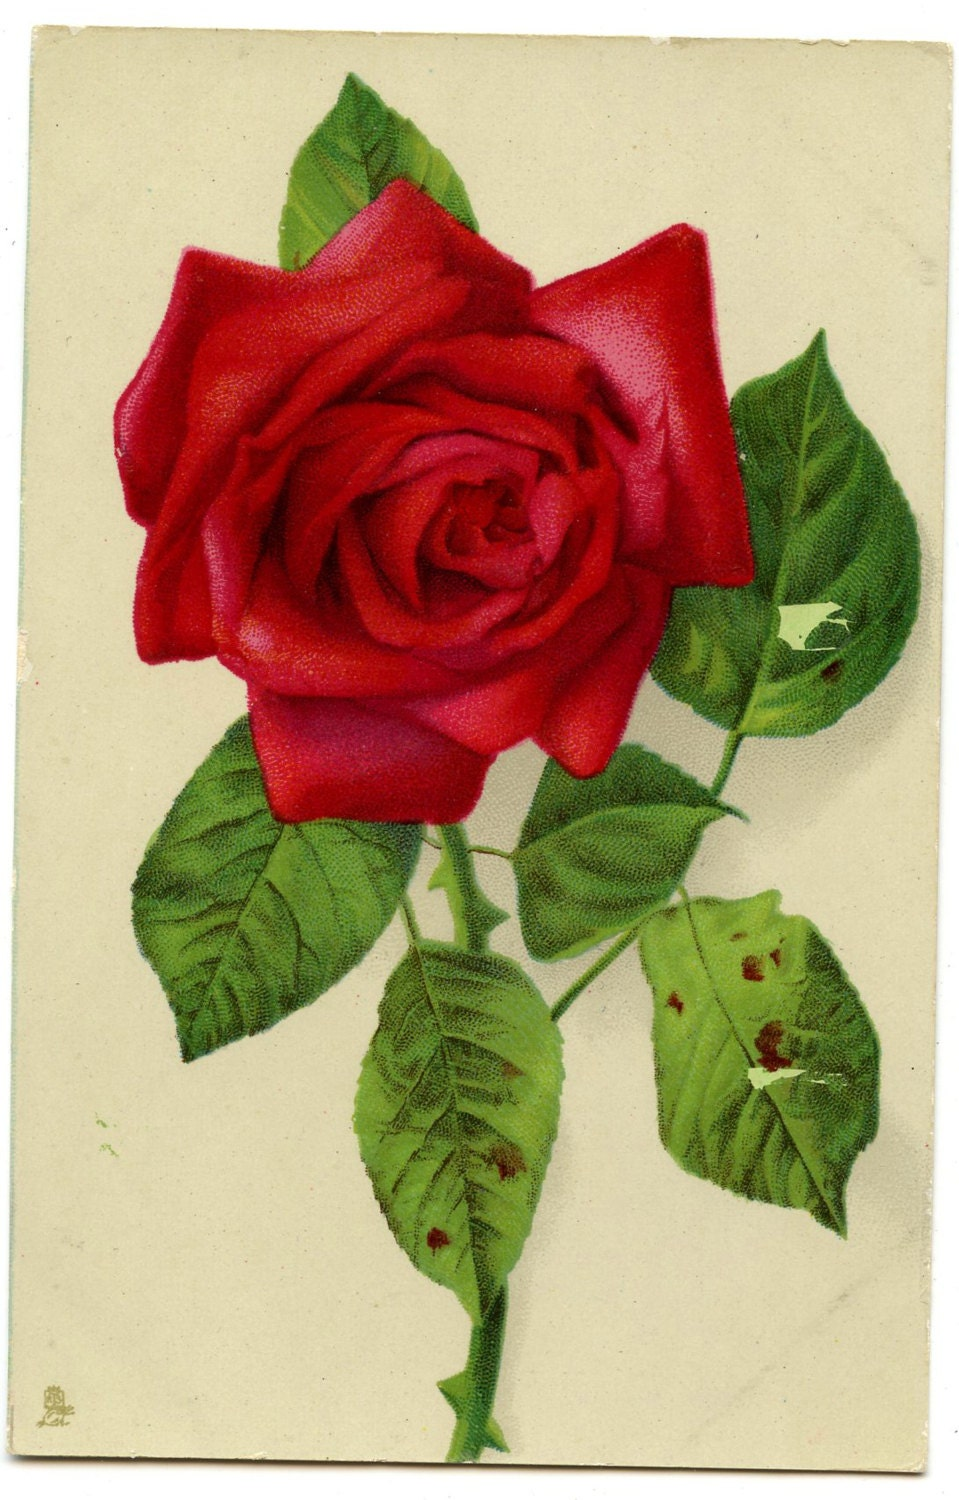 Image of 1920s Red Rose Postcard Edwardian Victorian Antique Vintage Photo Flowers Floral Chromolithograph